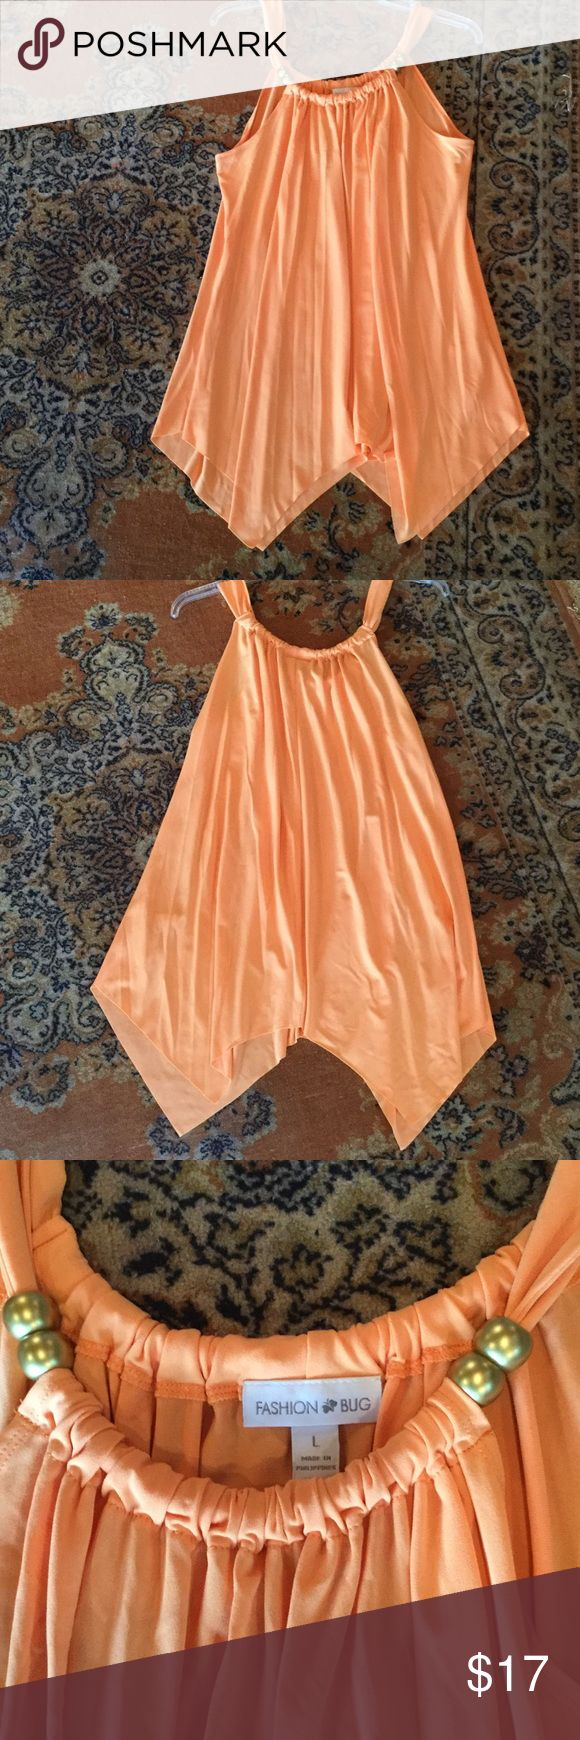 Spring/summer top Light orange, cantaloupe type color, double gold beads atop each side, long flowing angled v ends, very cute and pretty! 94% polyester 6% spandex, very fun! Fashion Bug Tops